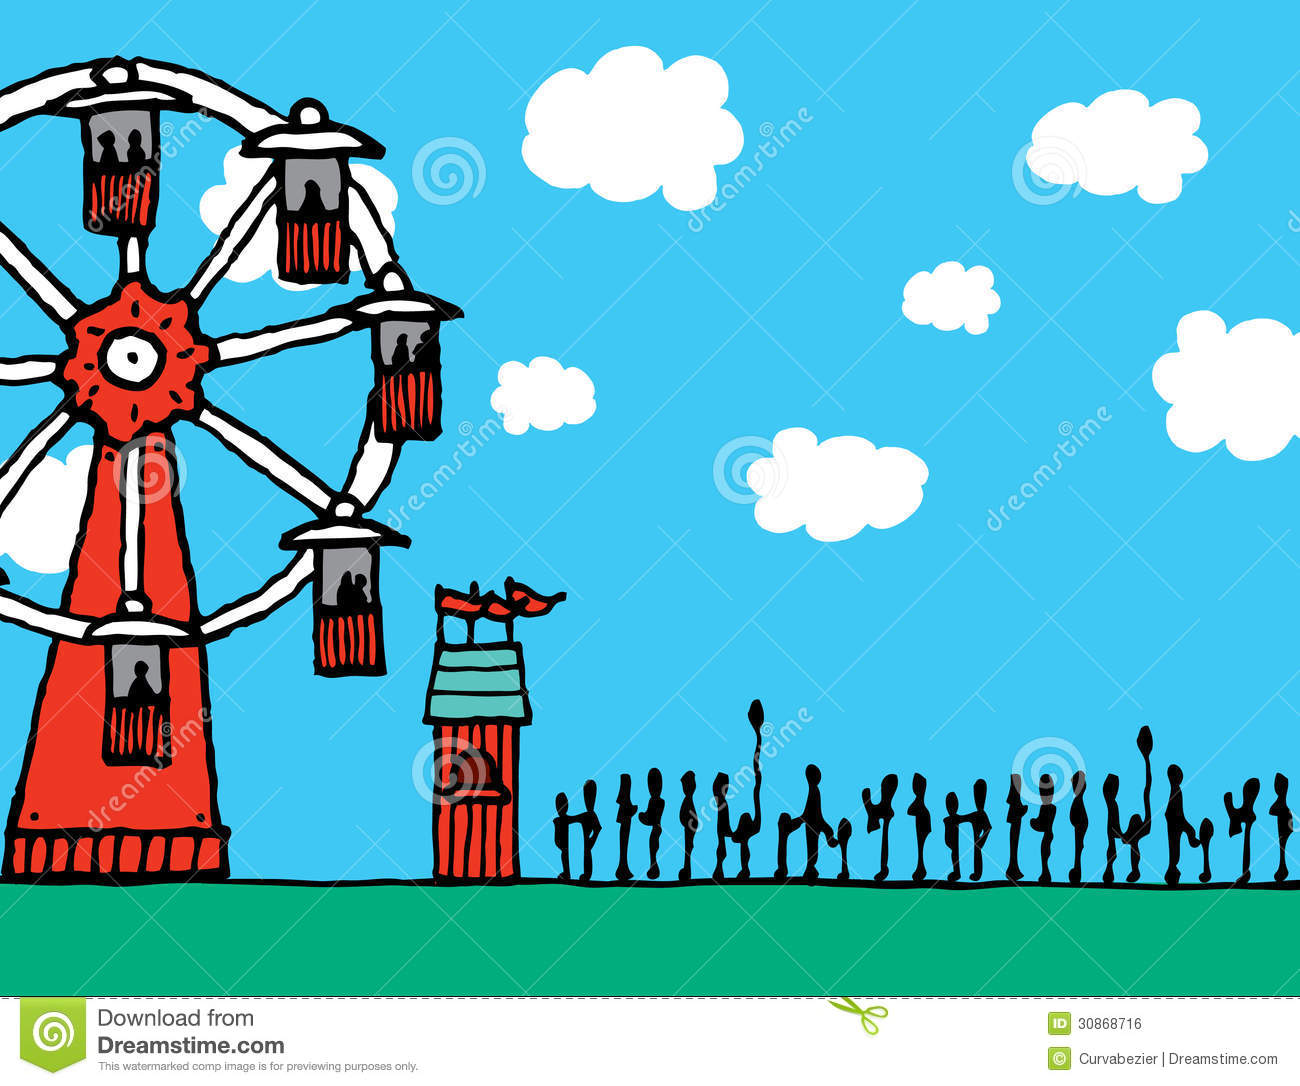 Waiting In Line For The Ferris Wheel Stock Illustration